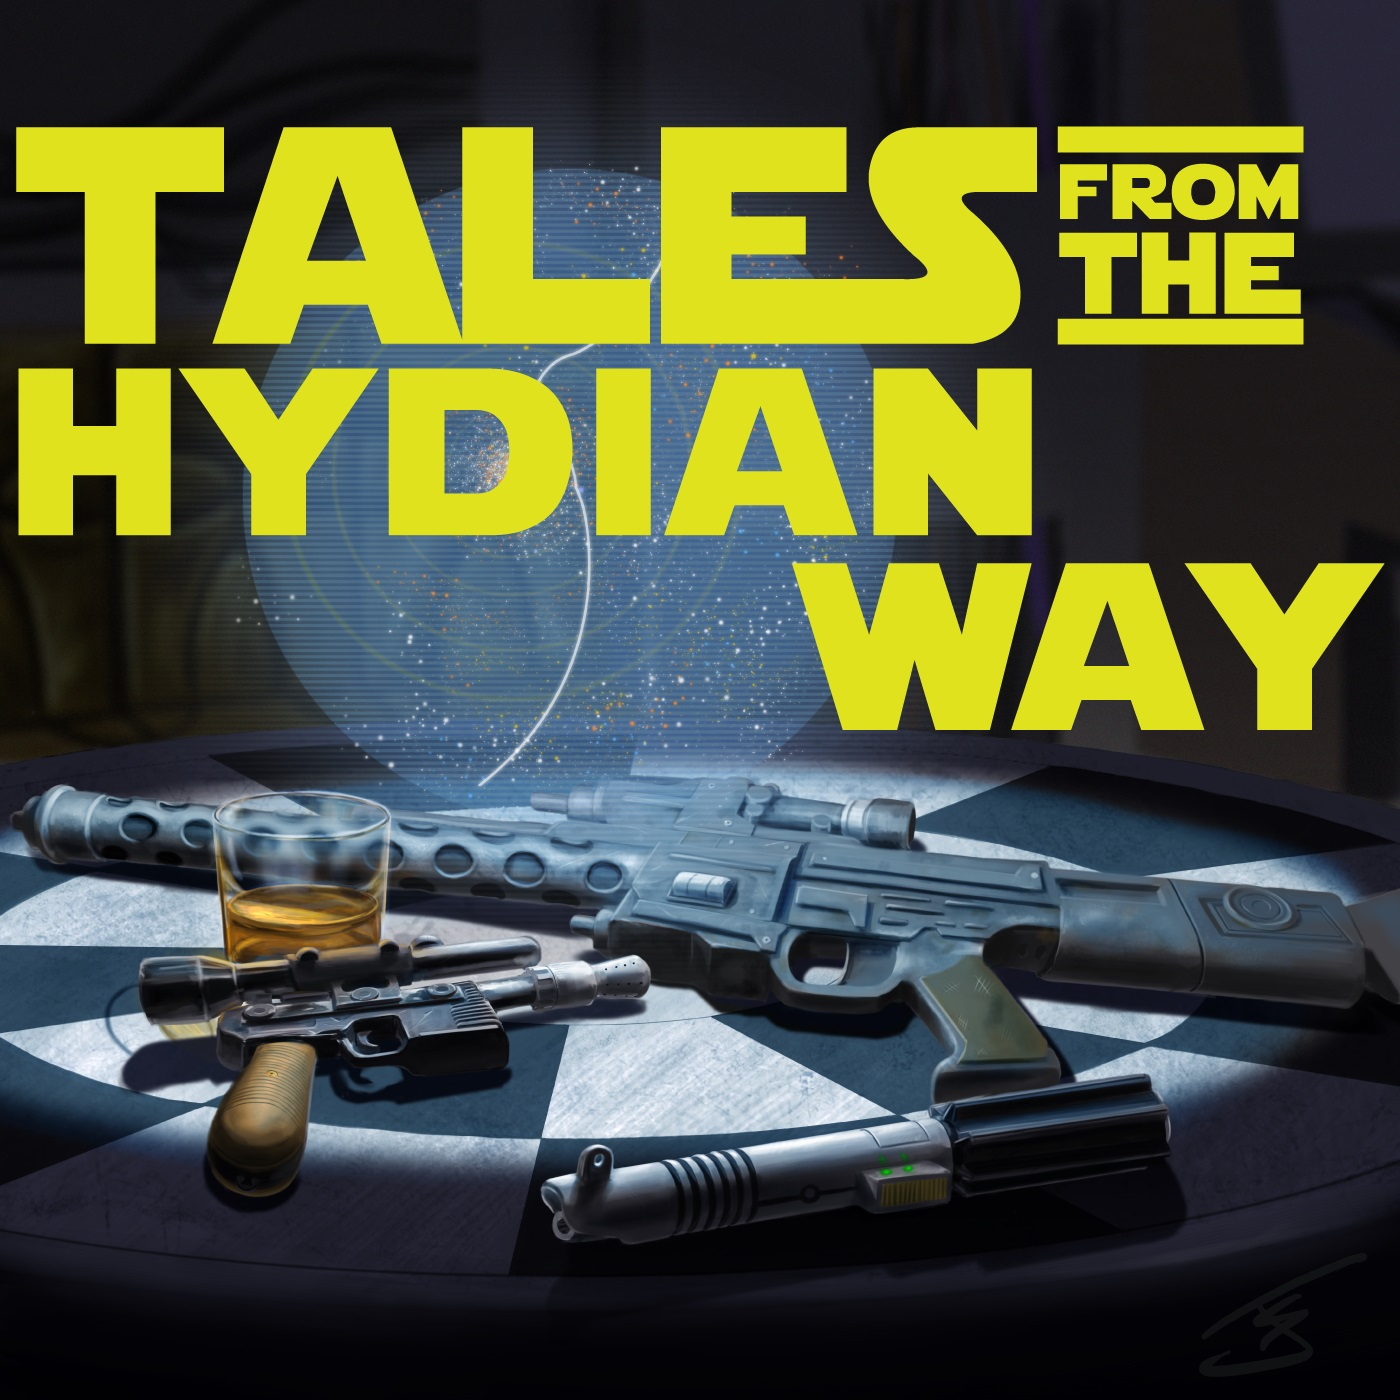 Tales From the Hydian Way